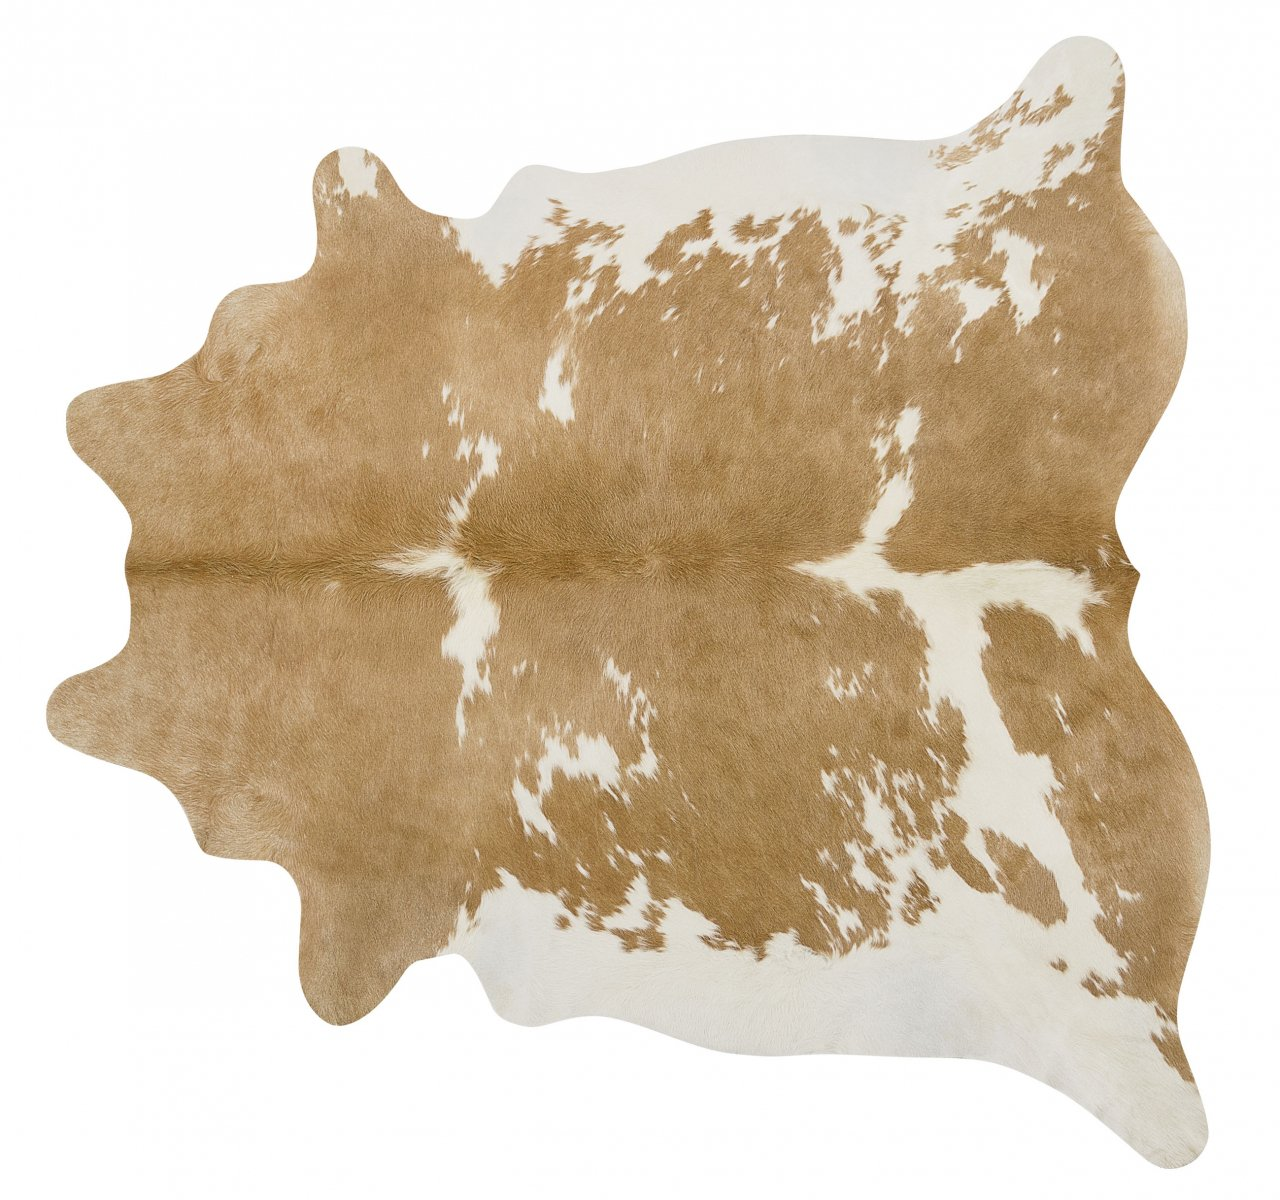 Palomino and White Brazilian Cowhide Rug Cow Hide Area Rugs Leather - Size XL